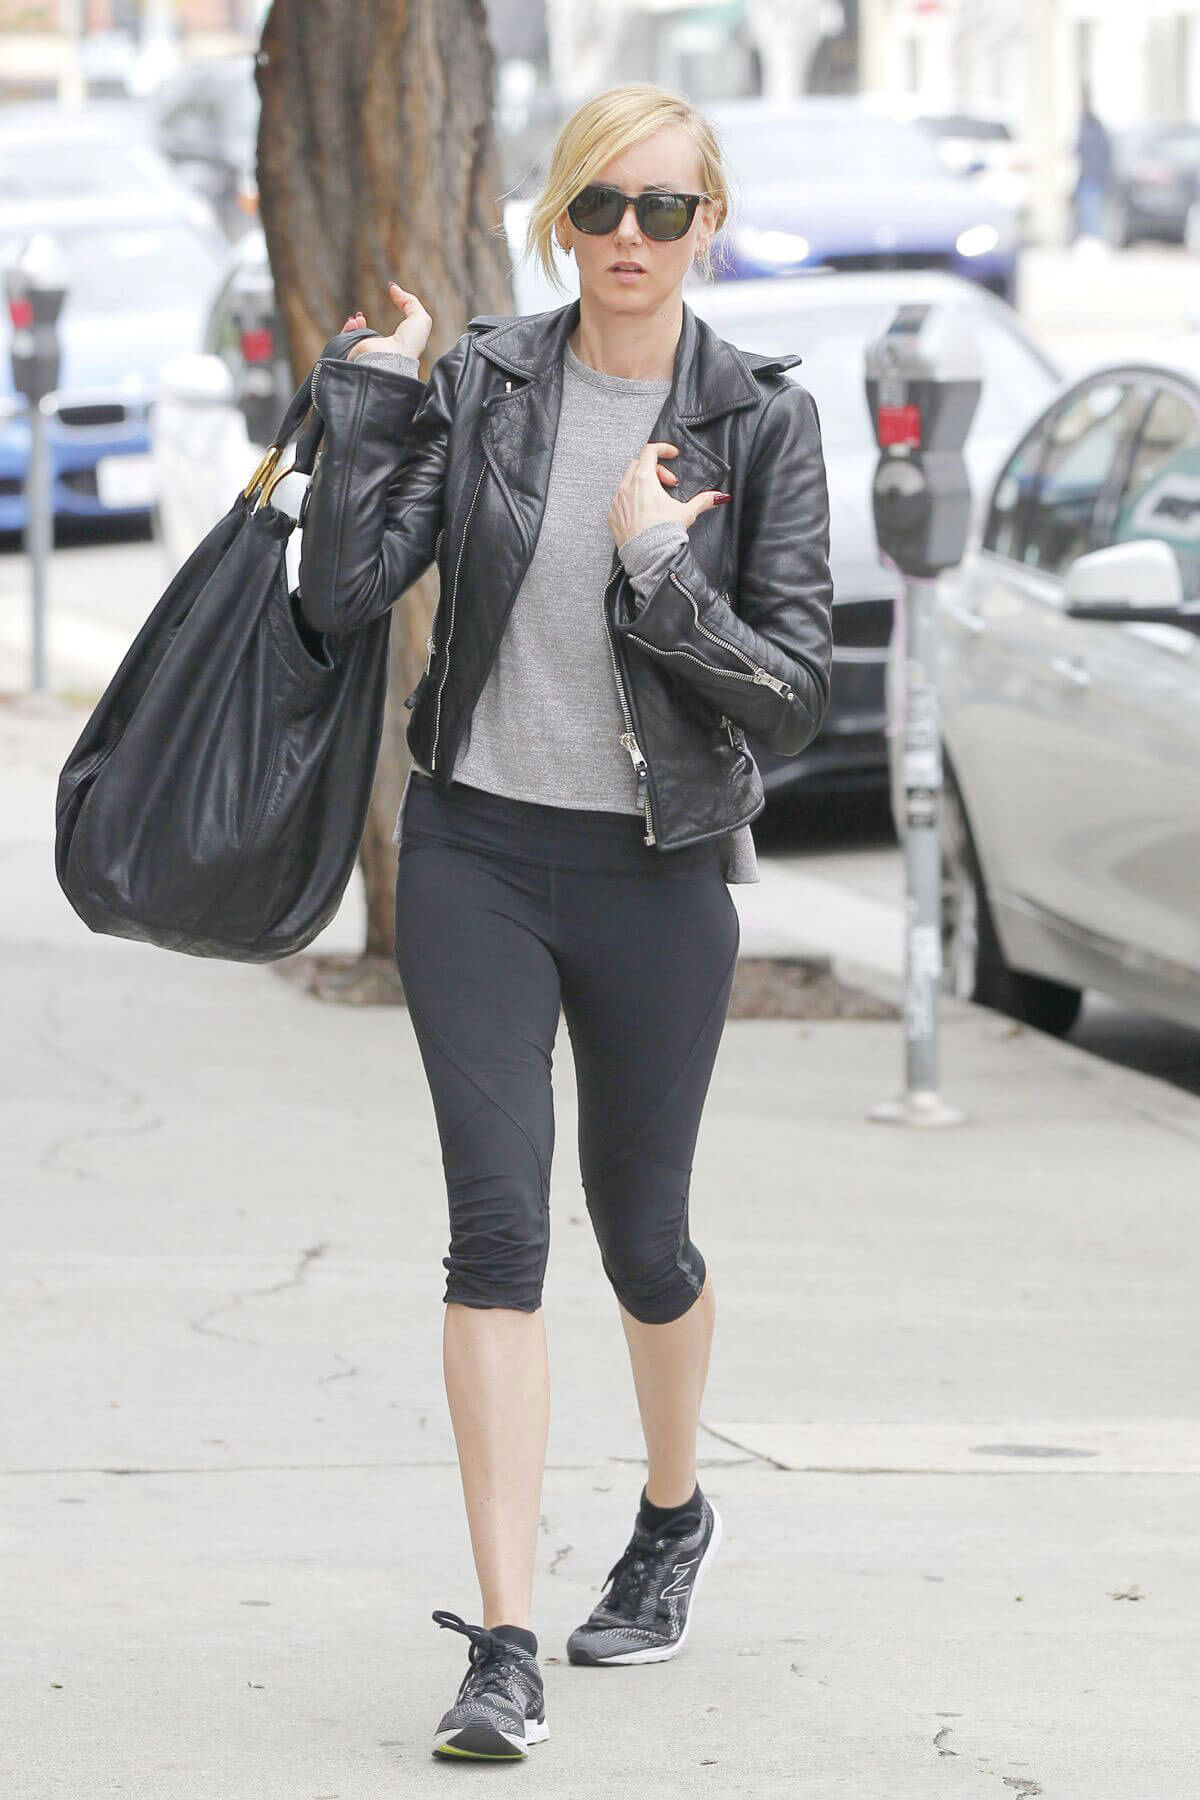 Kimberly Stewart Stills in Leggings Out Shopping in West Hollywood